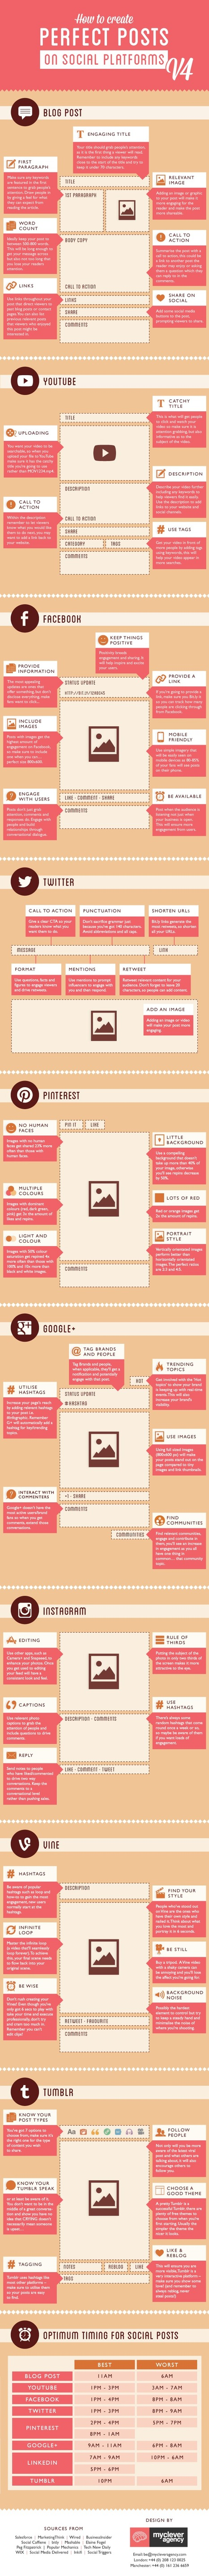 Creare un post perfetto sui Social Network [infografica] - | Random stuff | Scoop.it